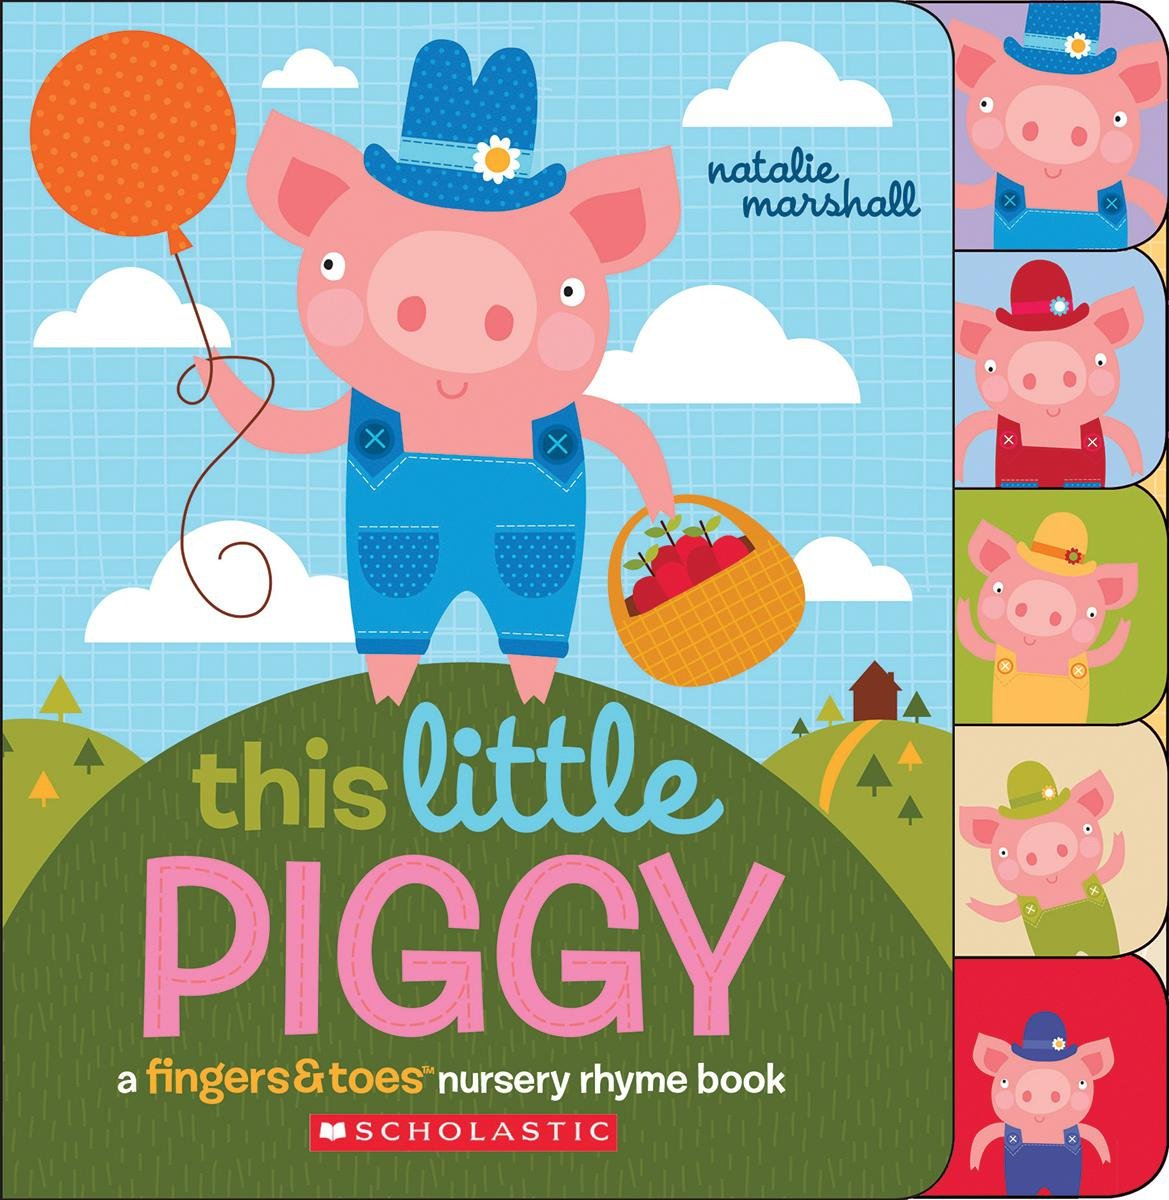 Amazon.com: This Little Piggy: A Fingers & Toes Nursery Rhyme Book (Fingers  & Toes Nursery Rhyme Books) (9780545767613): Natalie Marshall: Books